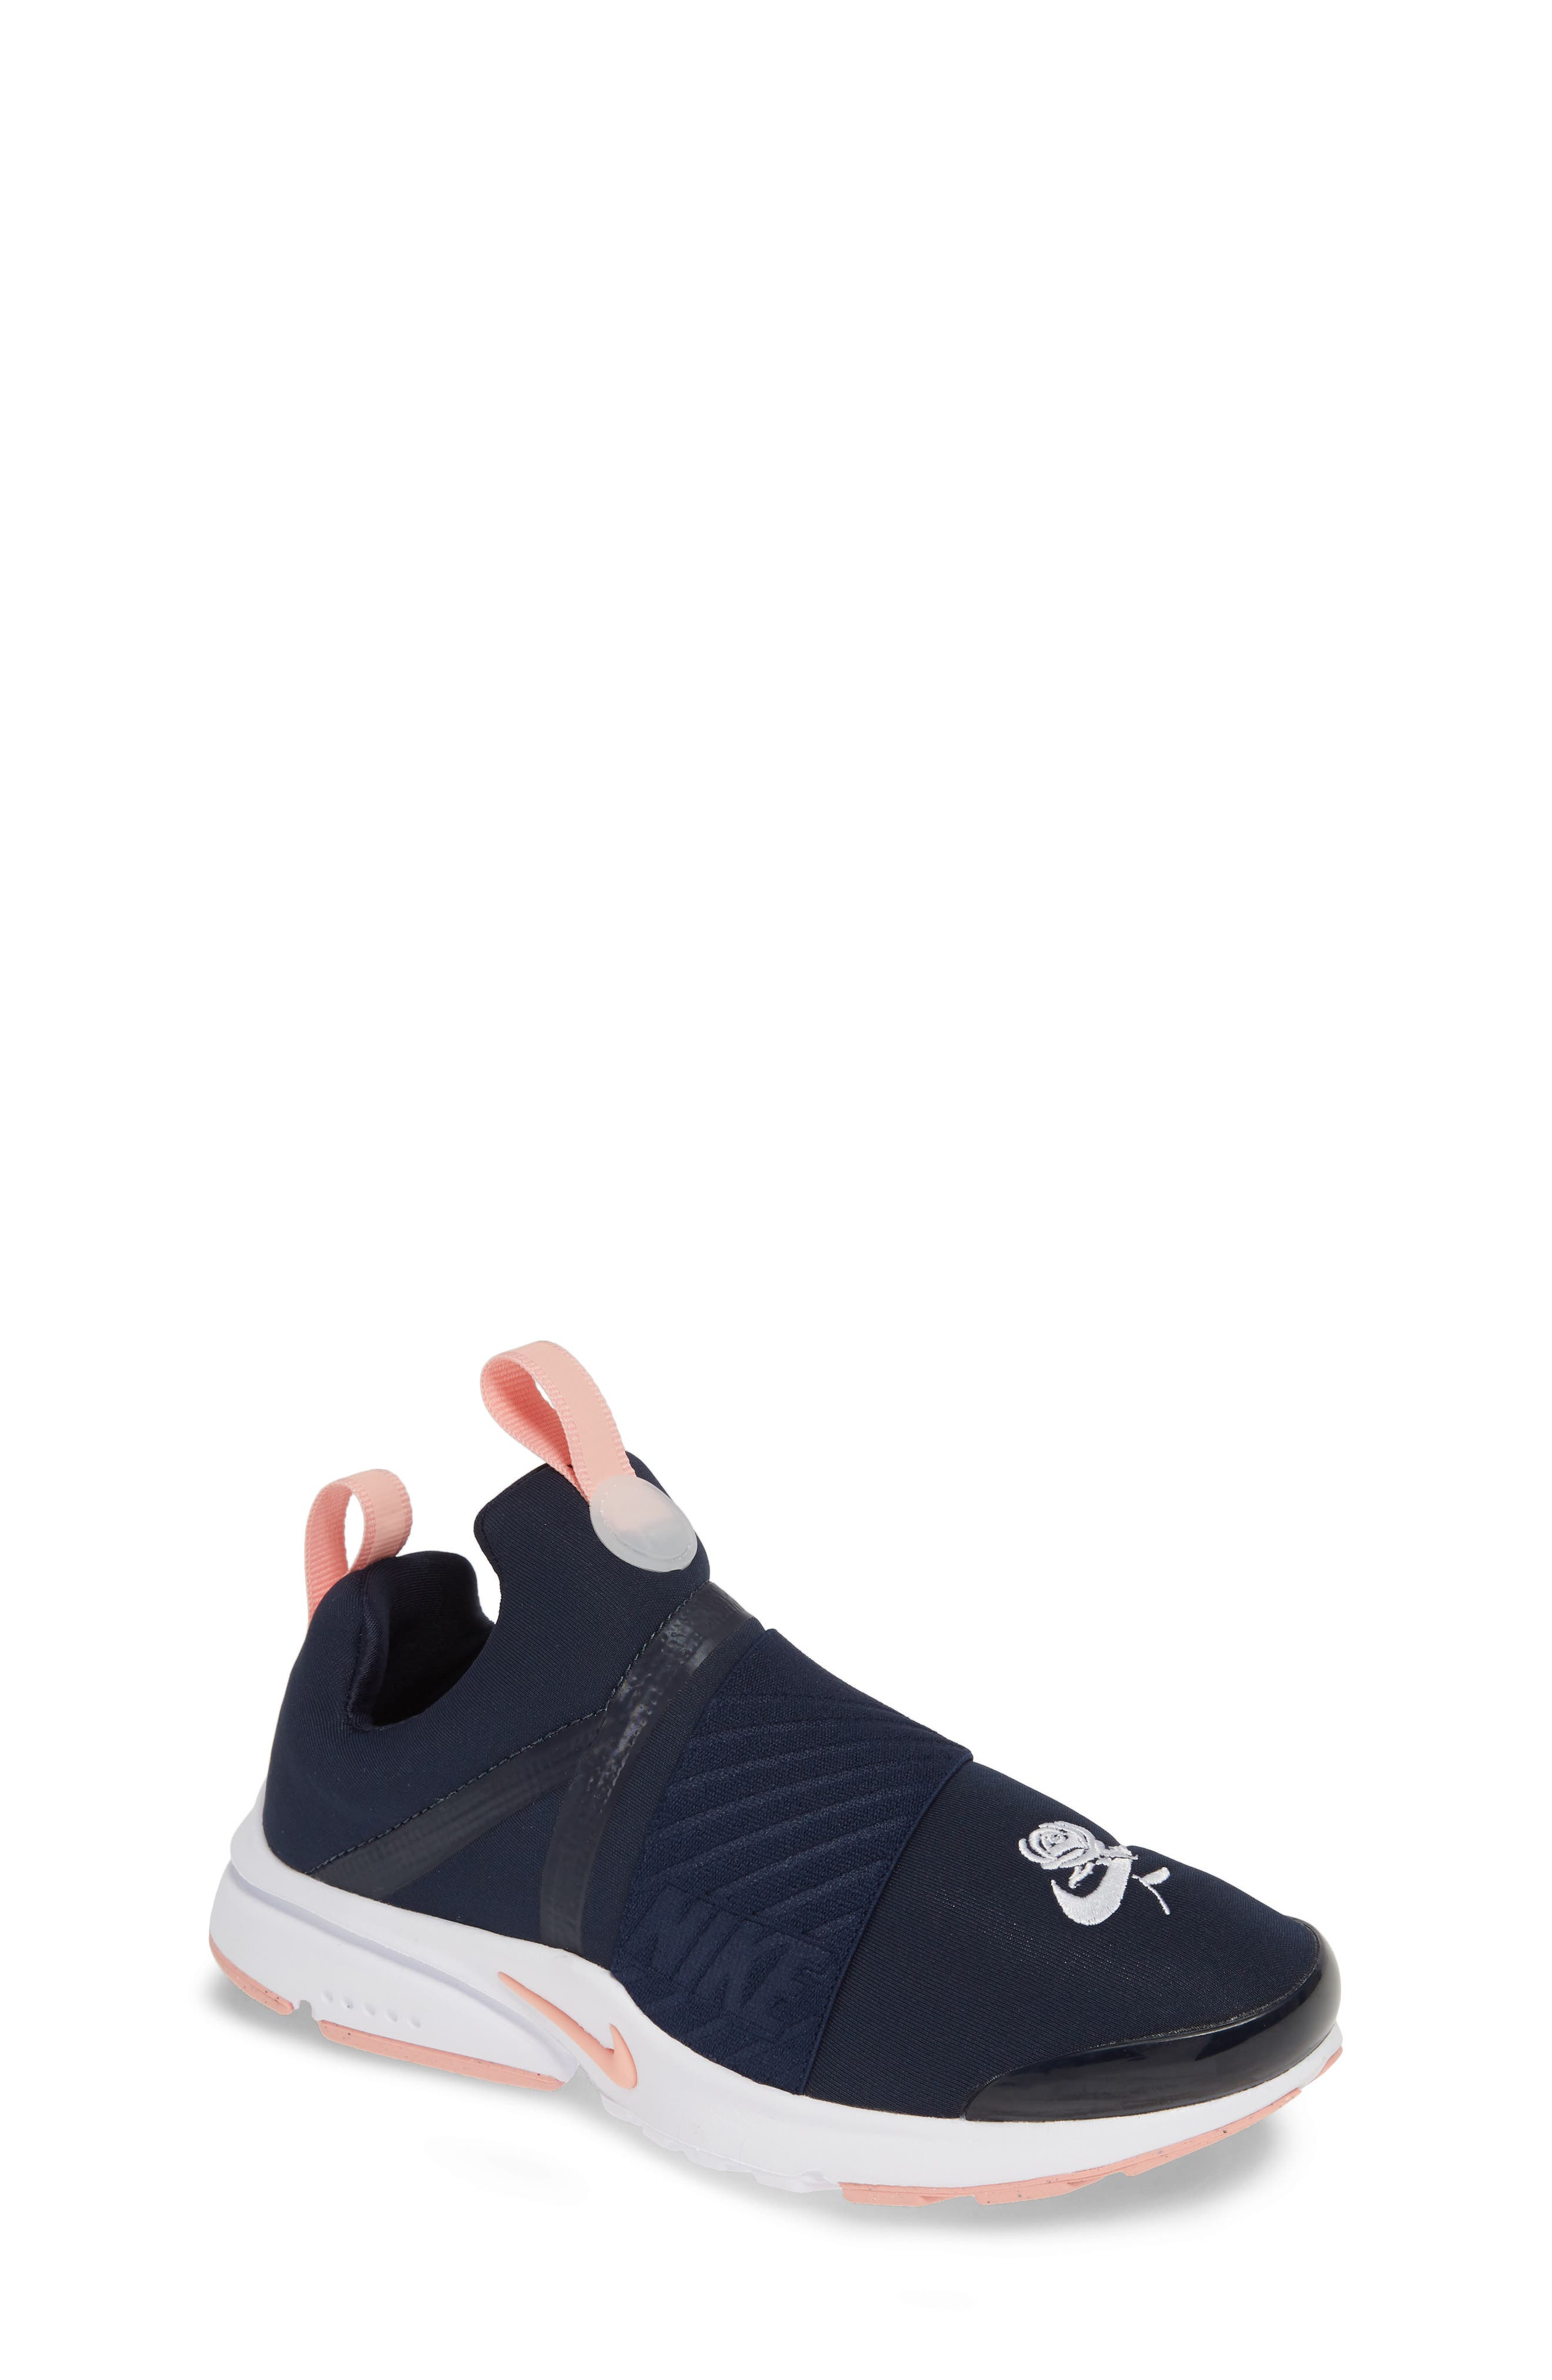 NIKE,                             Presto Extreme VDAY Sneaker,                             Main thumbnail 1, color,                             OBSIDIAN/ BLEACHED CORAL-WHITE